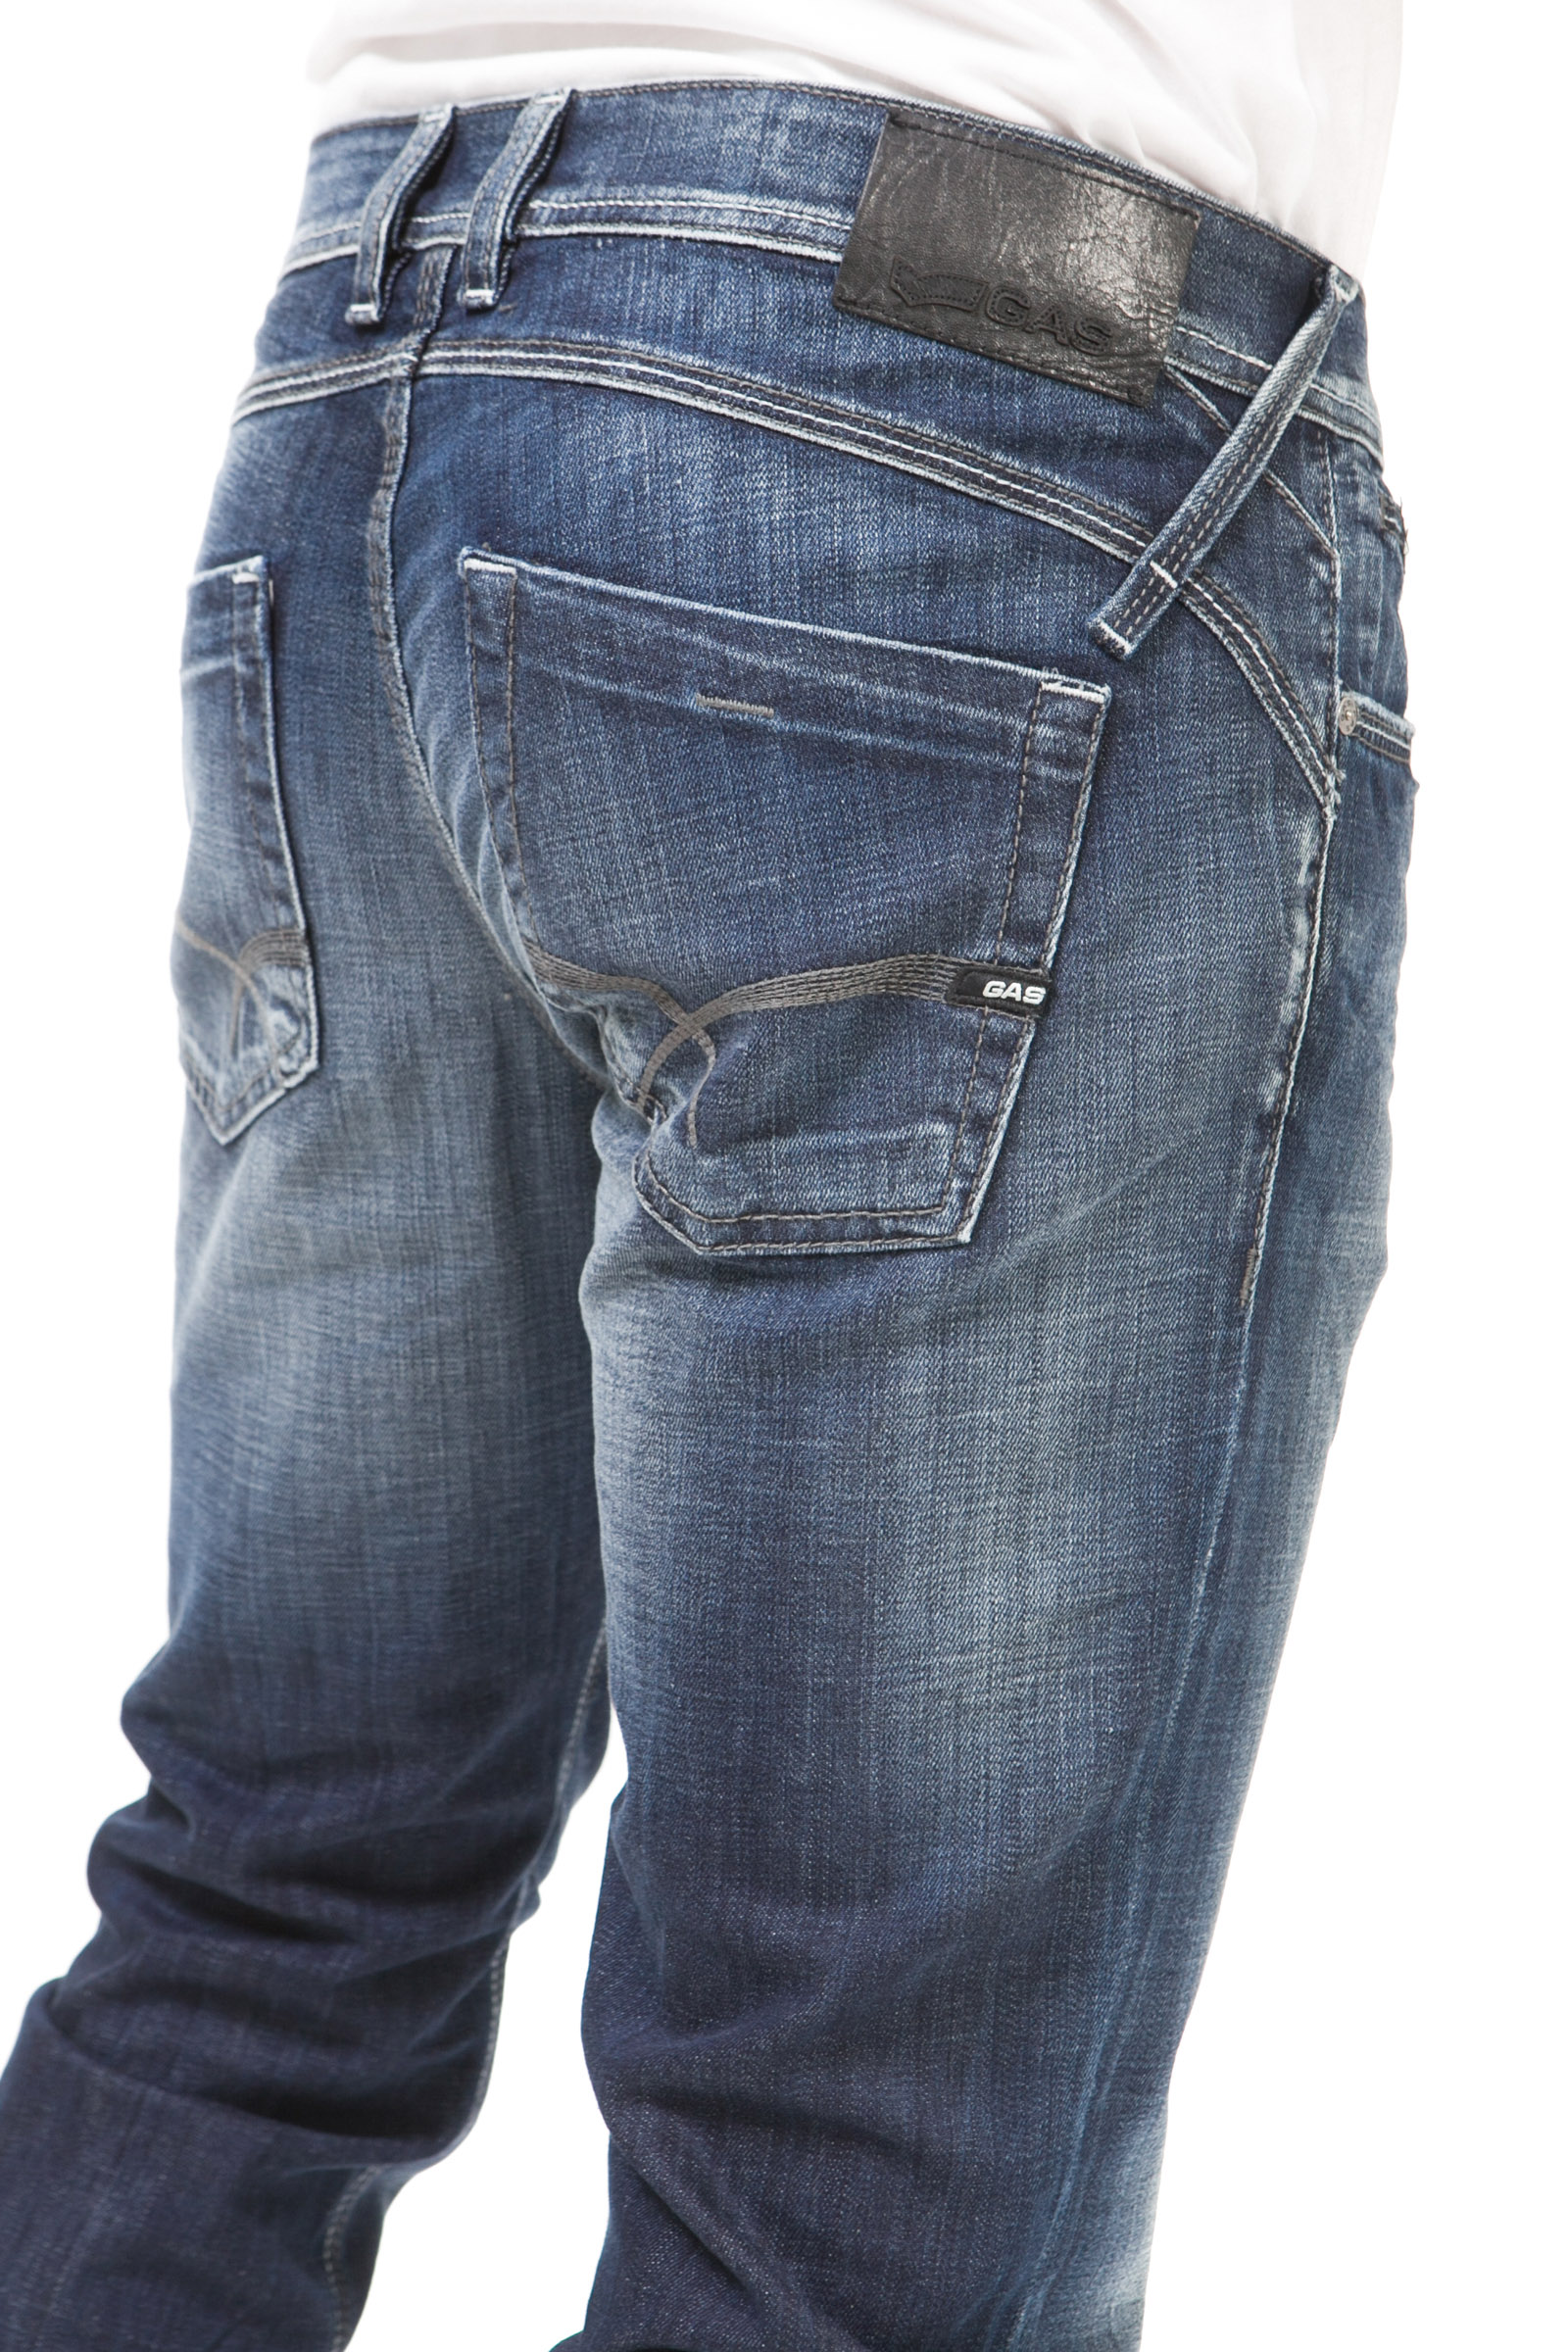 GAS WARRIS J. W867 Pantaloni jeans da uomo 5 tasche denim stretch straight fit | eBay